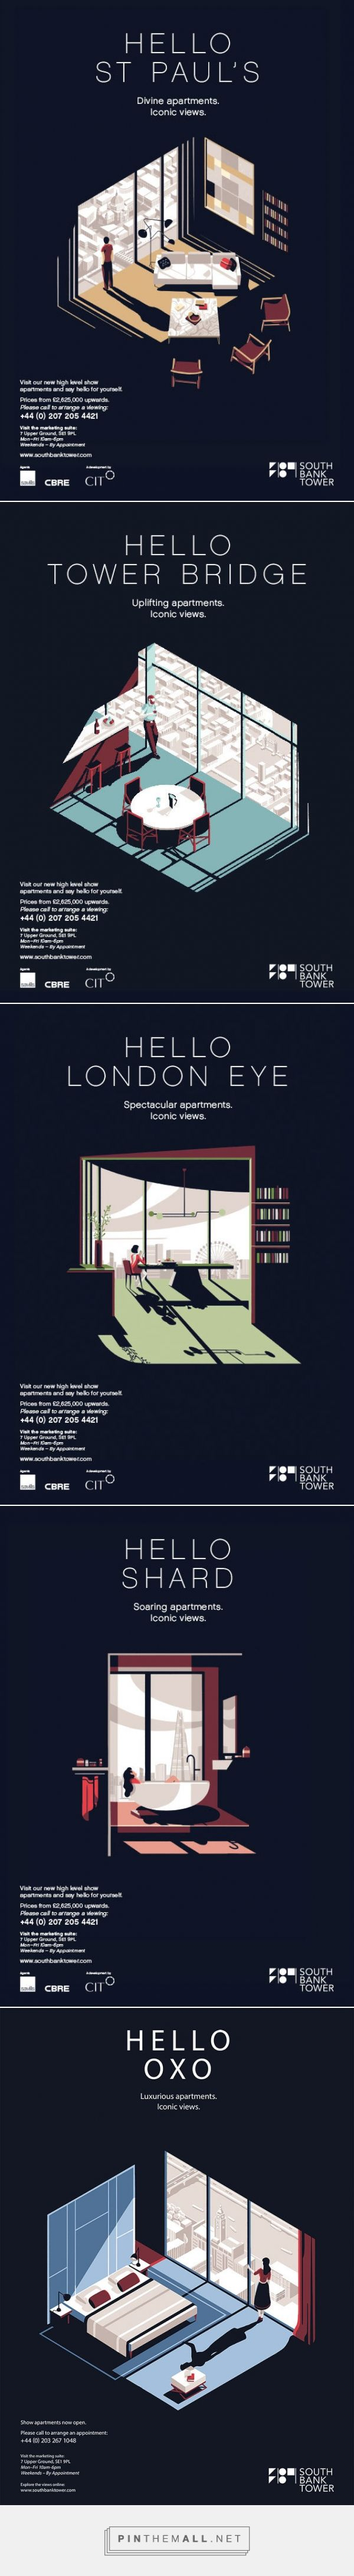 It's Nice That | Tom Haugomat's cinematic posters for luxury apartments in a…